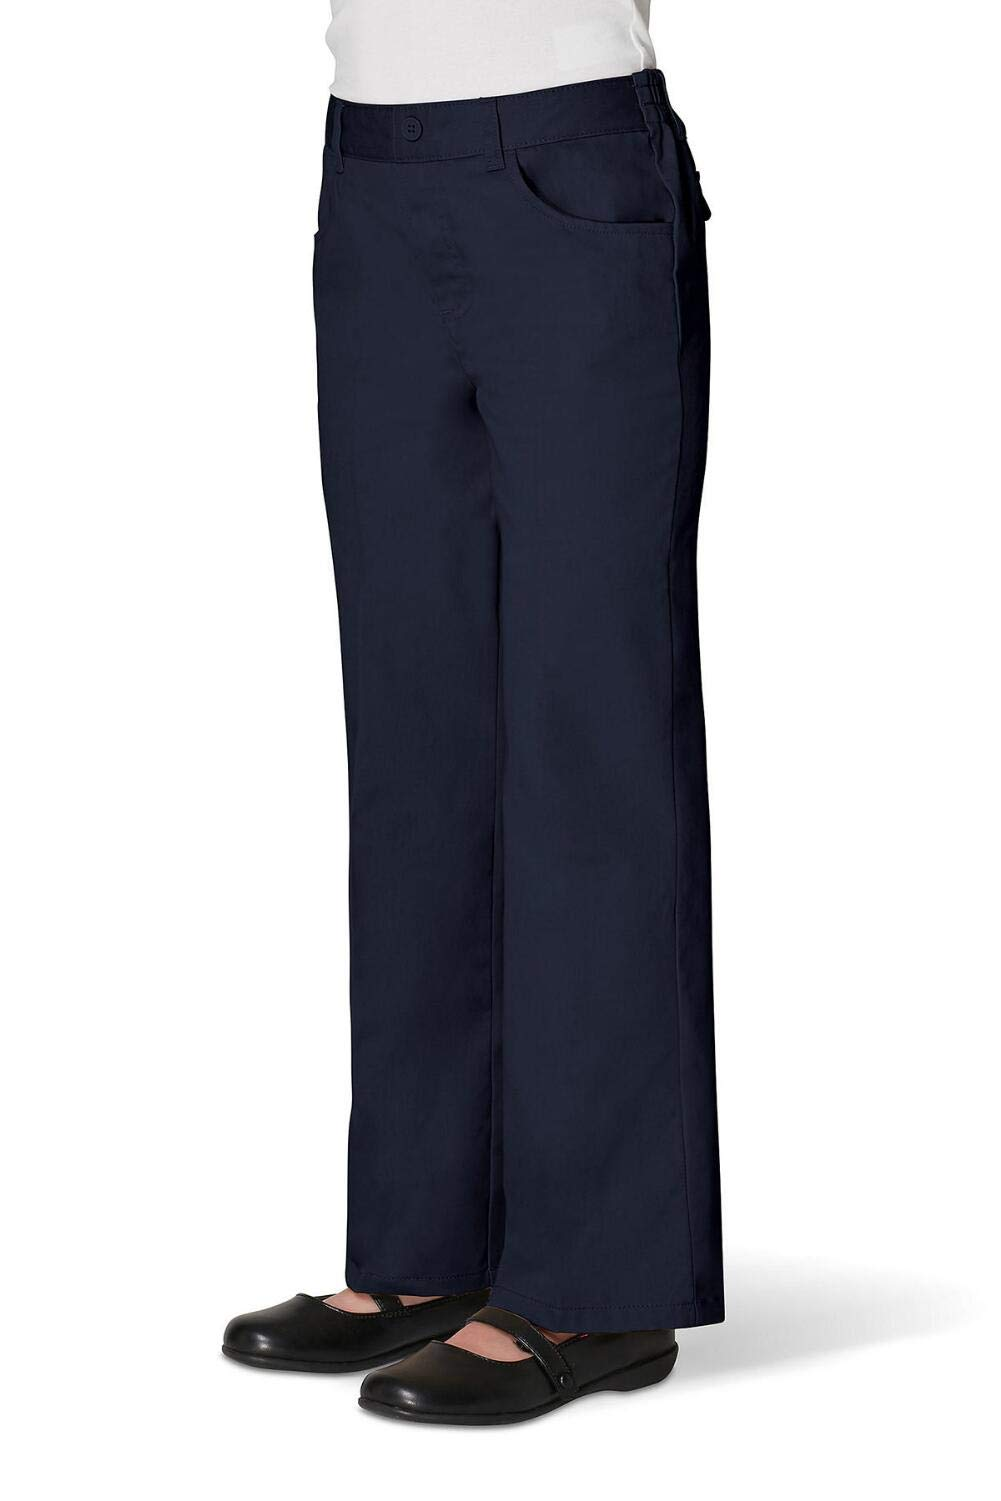 French Toast Big Girls' Pull-On Pant, Navy, 10